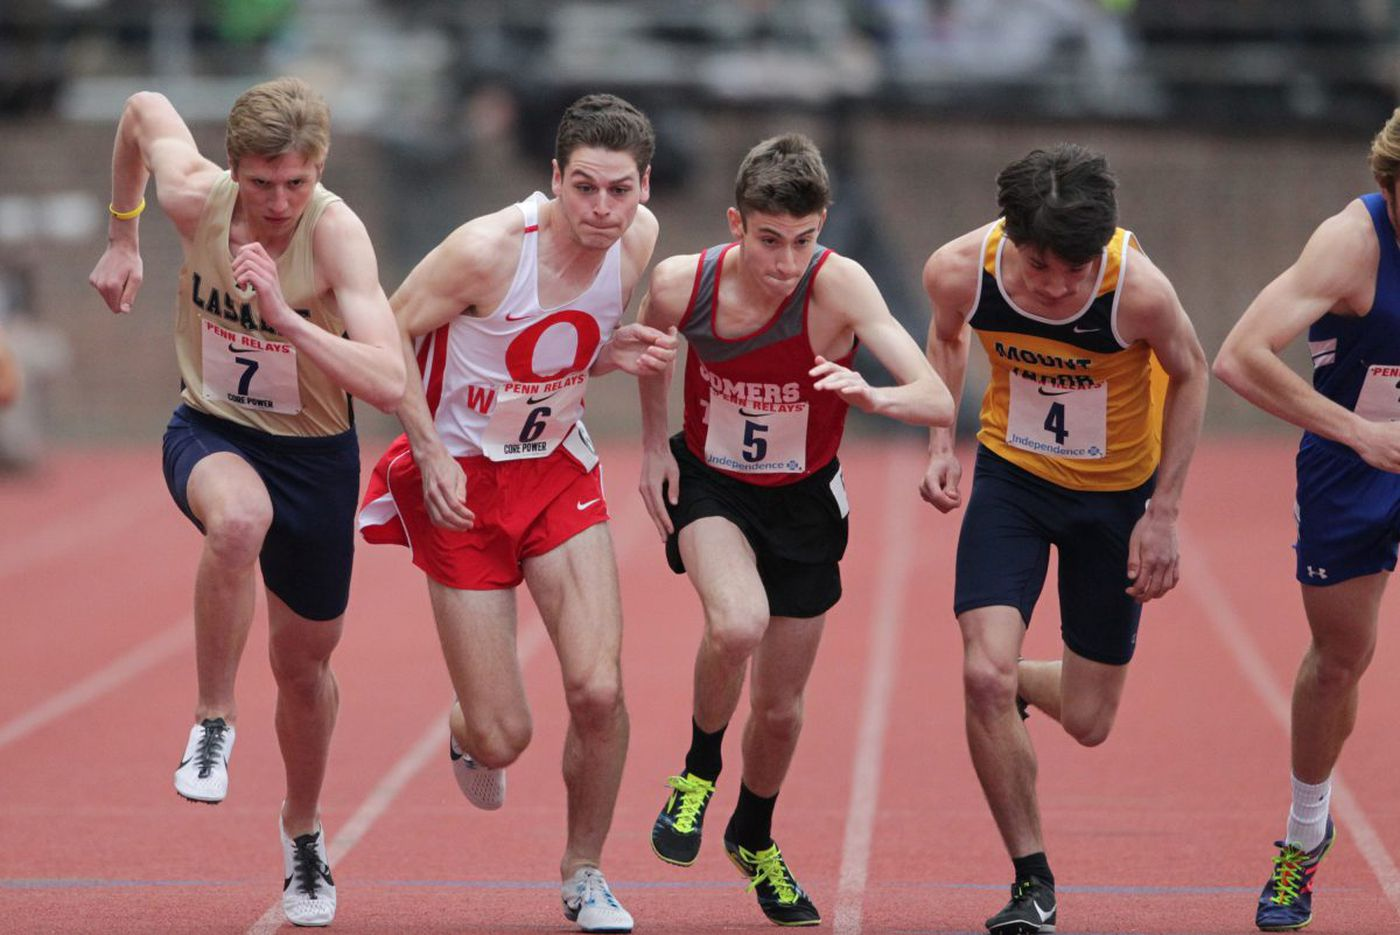 Penn Relays: Results, live updates from Friday's races